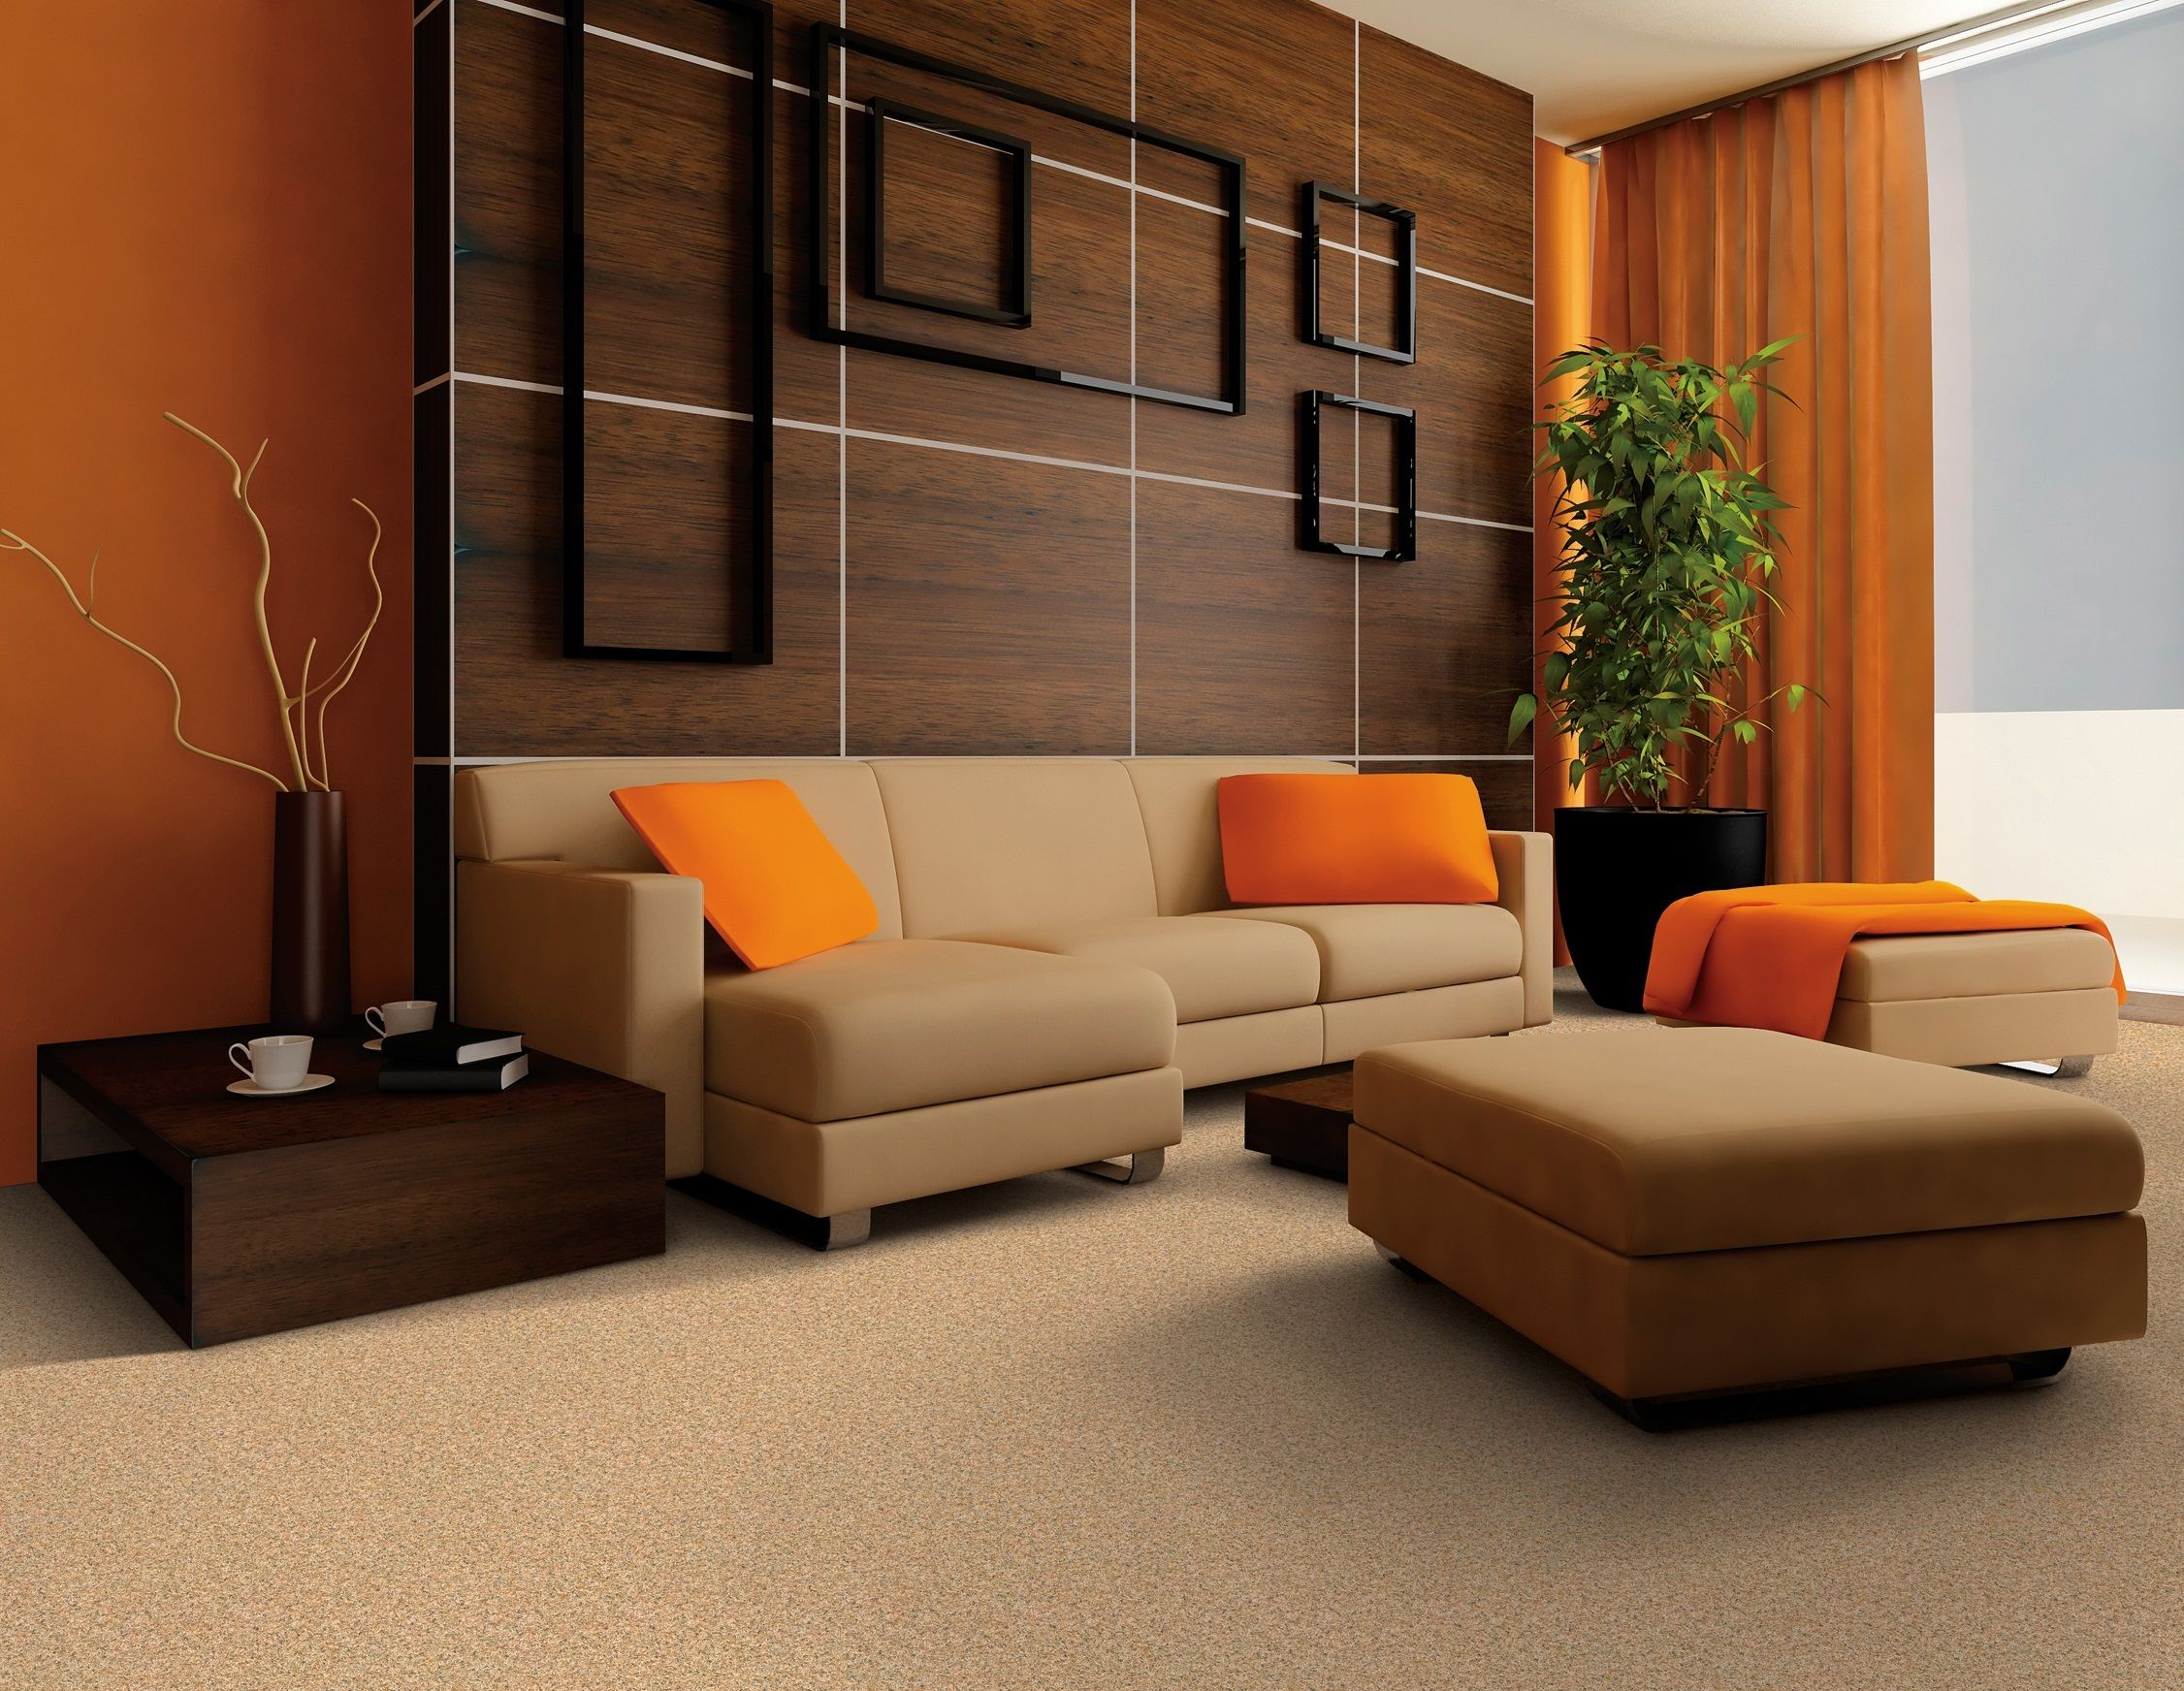 Bhg Decorating Color Schemes Living Room House Decor Orange And